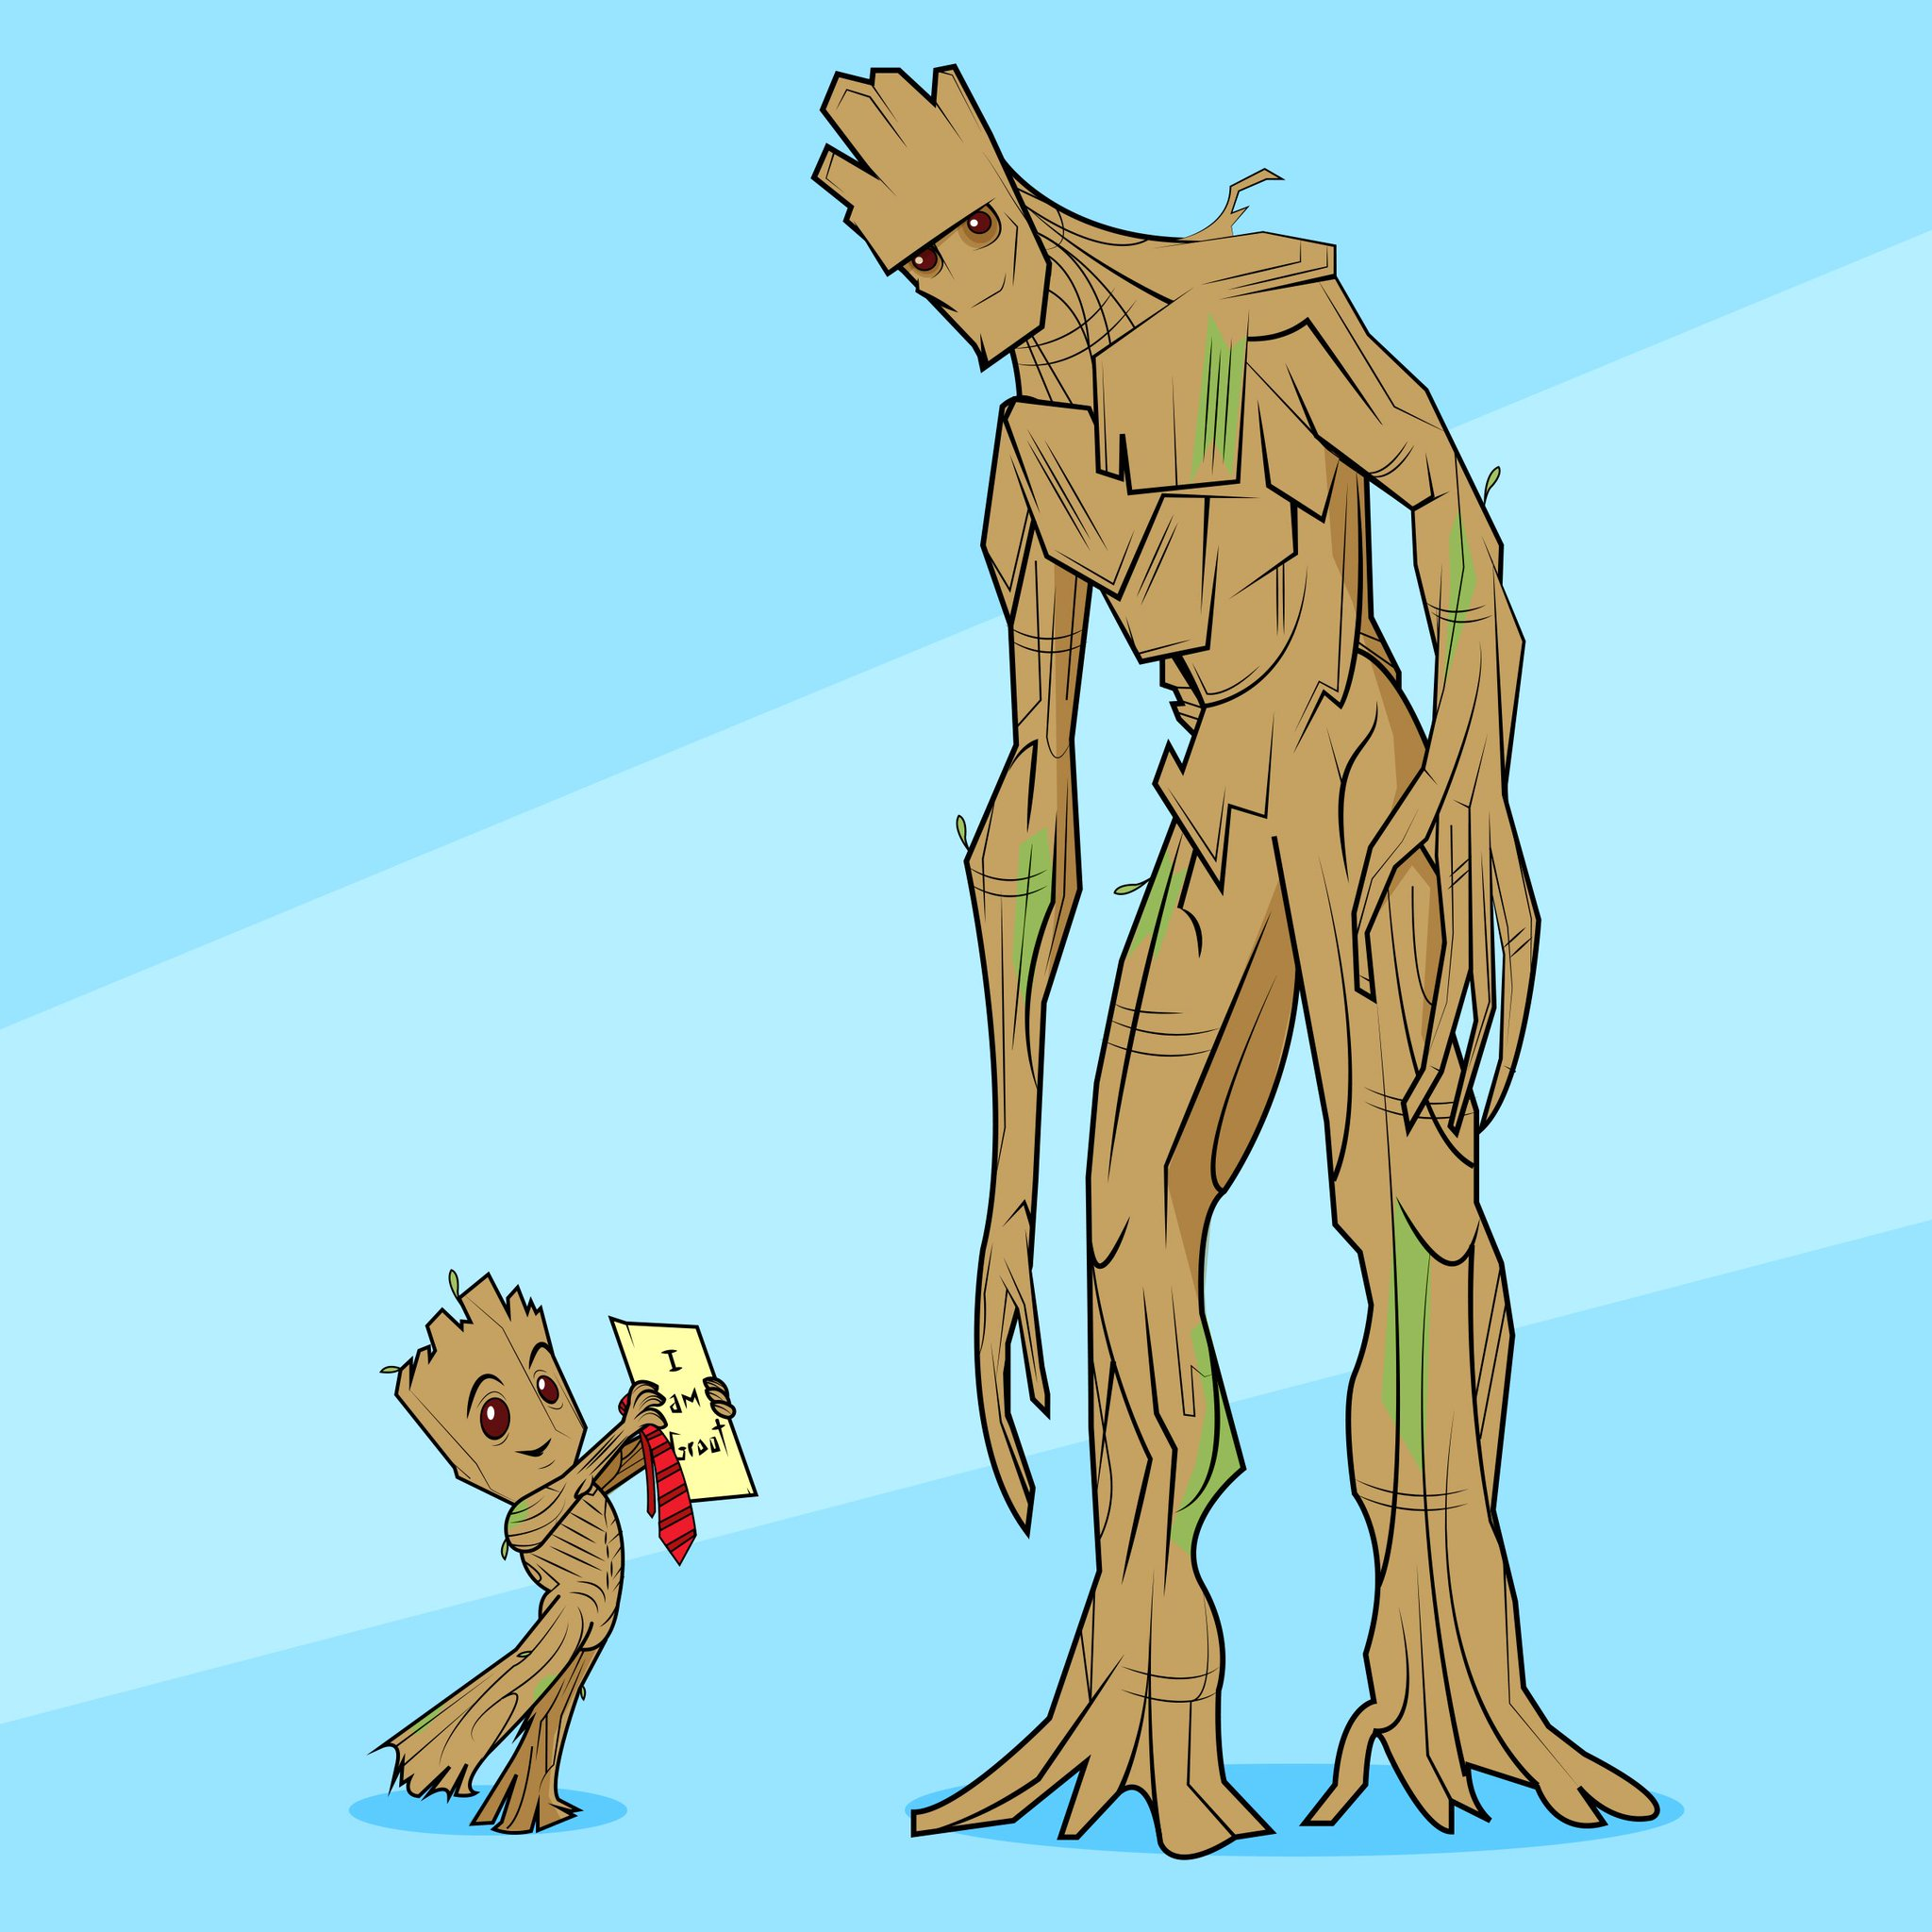 Groot? Groot. https://t.co/foyQt83stn